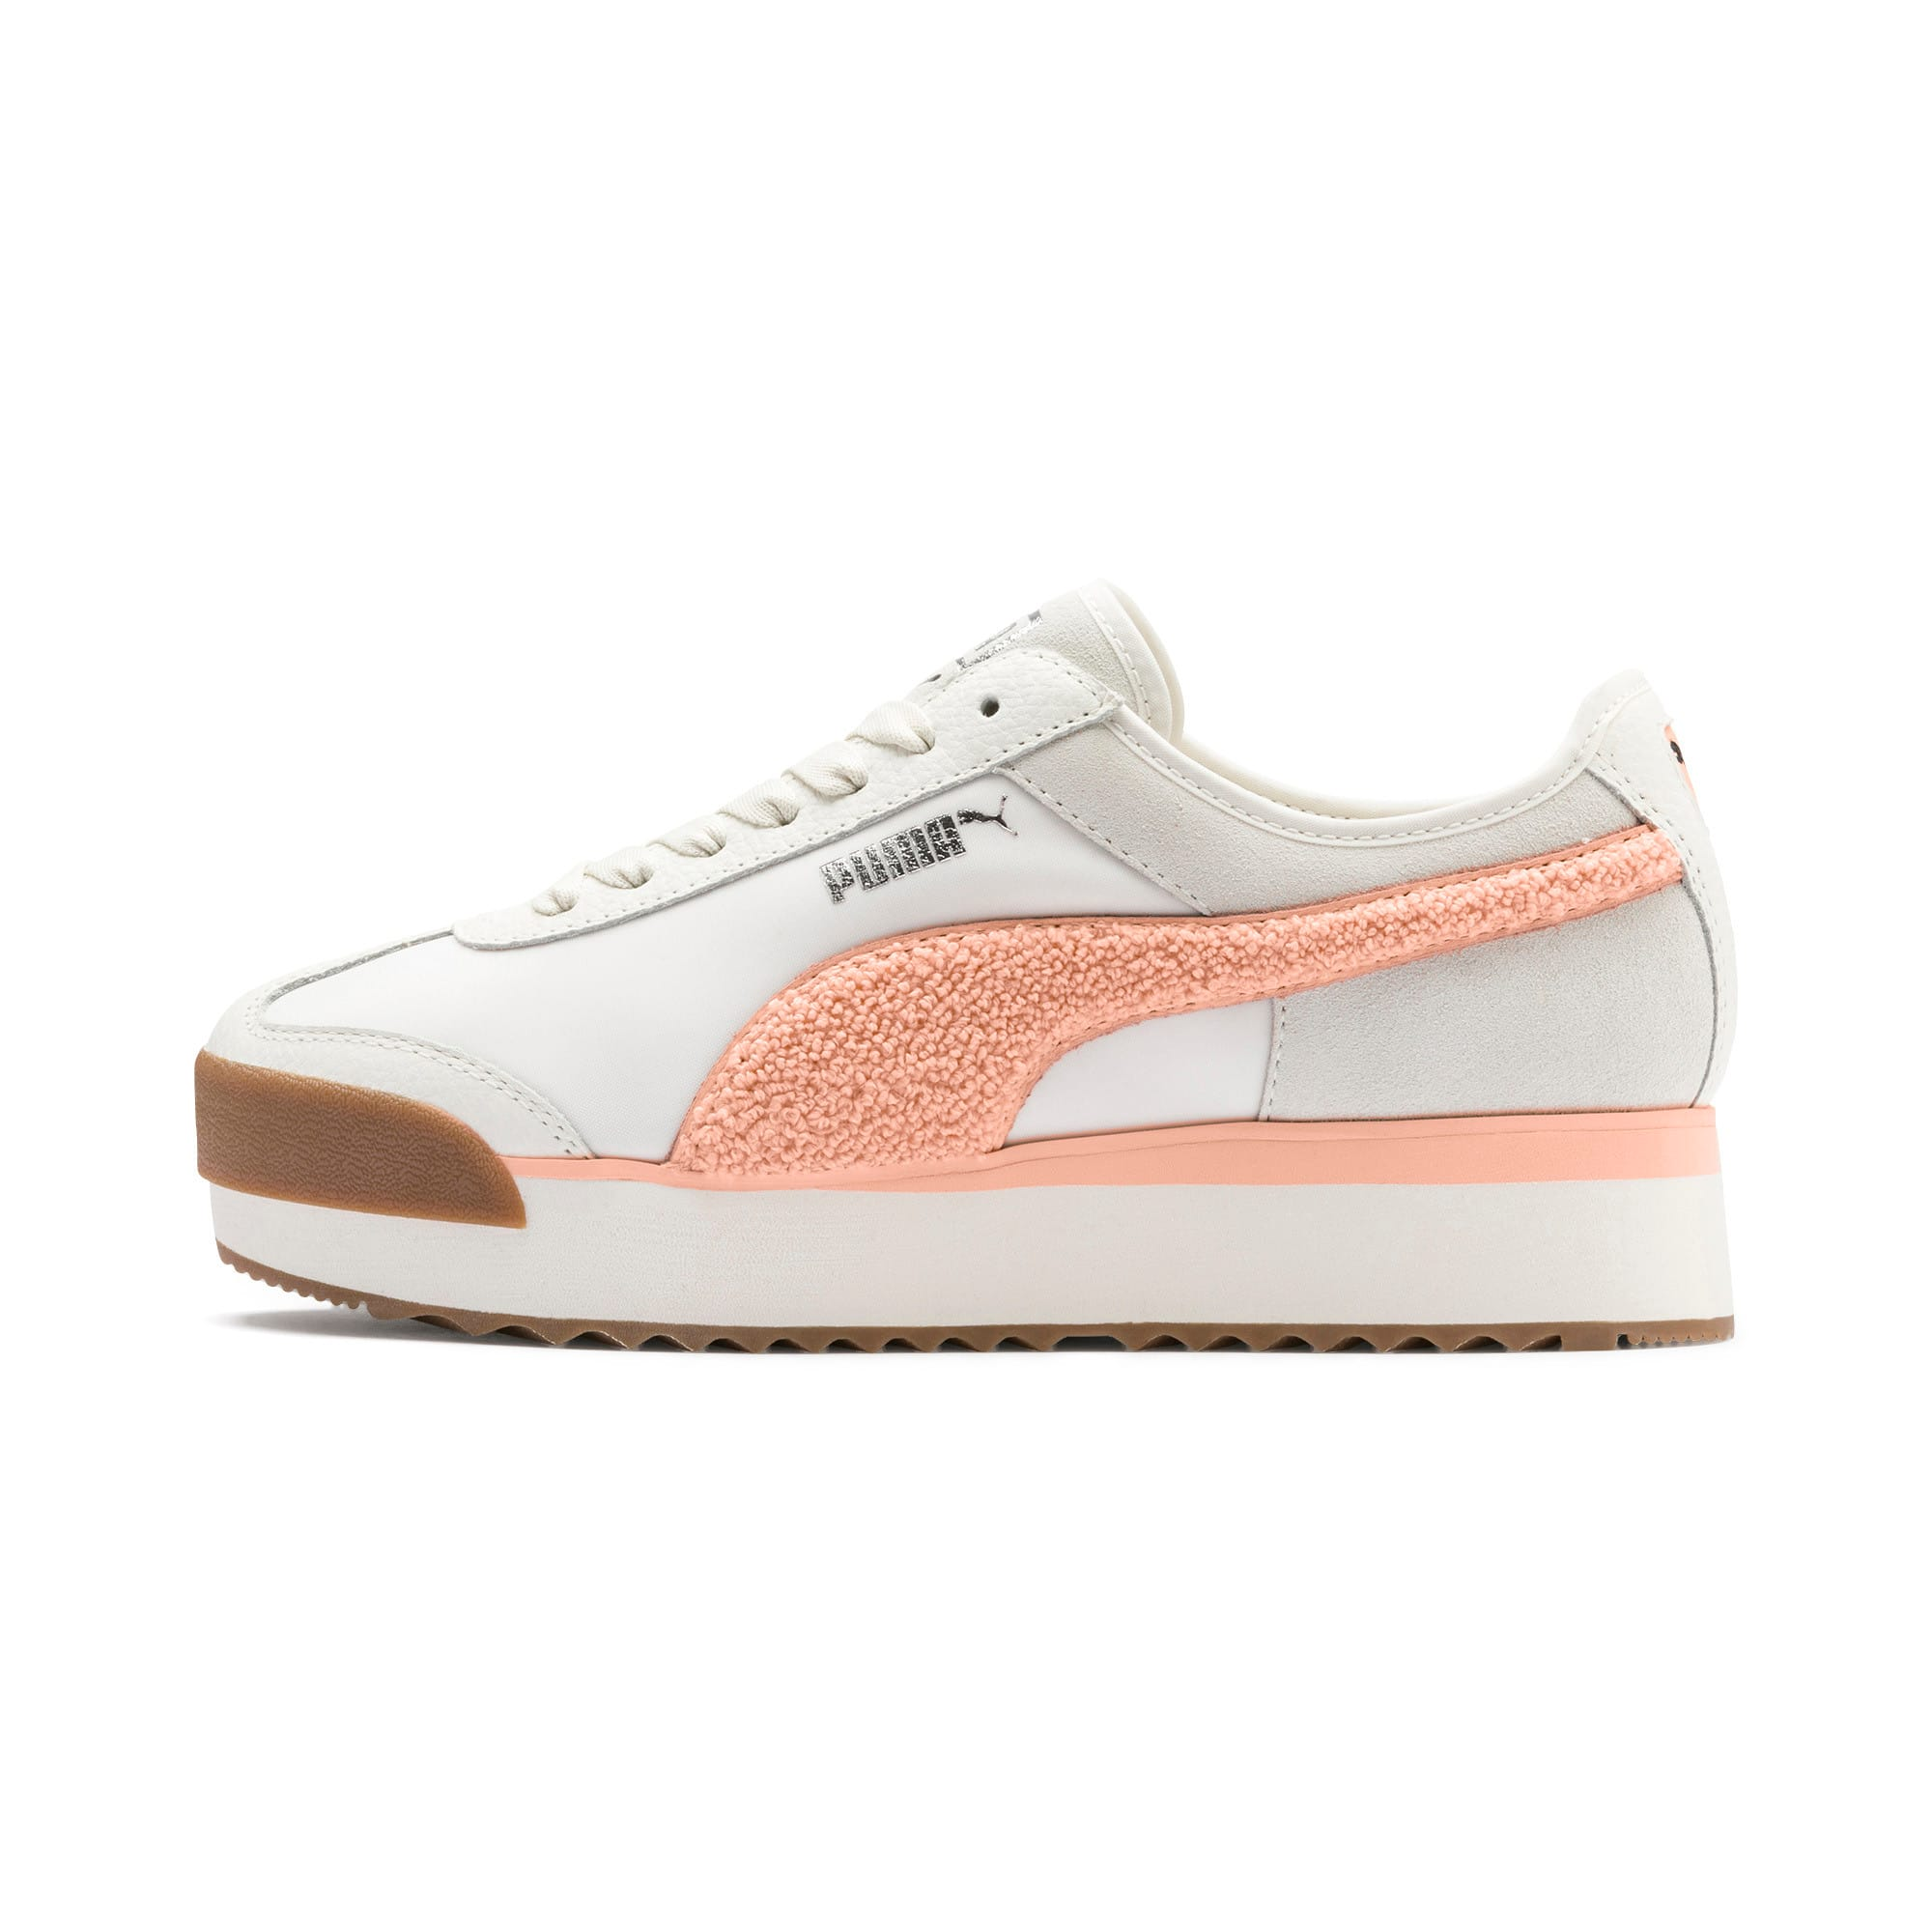 Thumbnail 1 of Roma Amor Heritage Women's Trainers, Marshmallow-Peach Parfait, medium